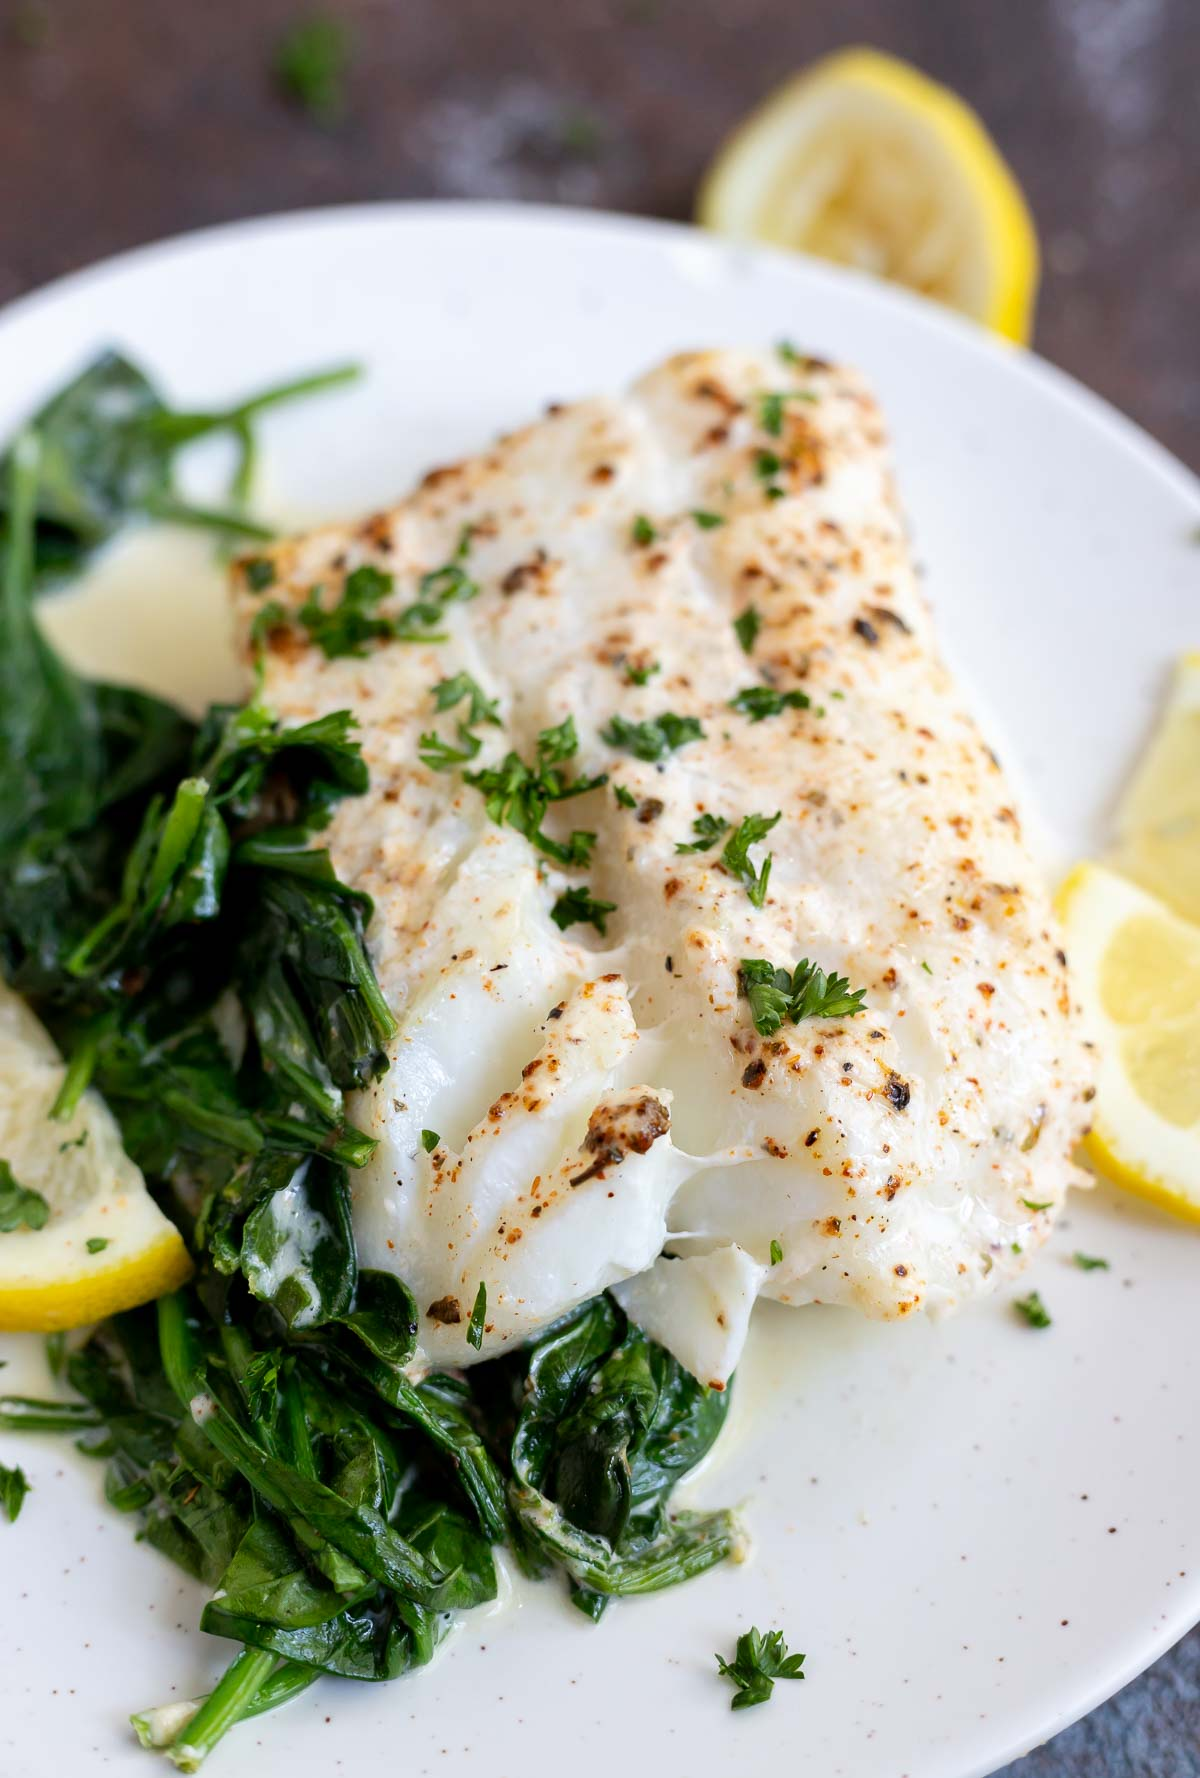 cod, spinach and cream served on white plate